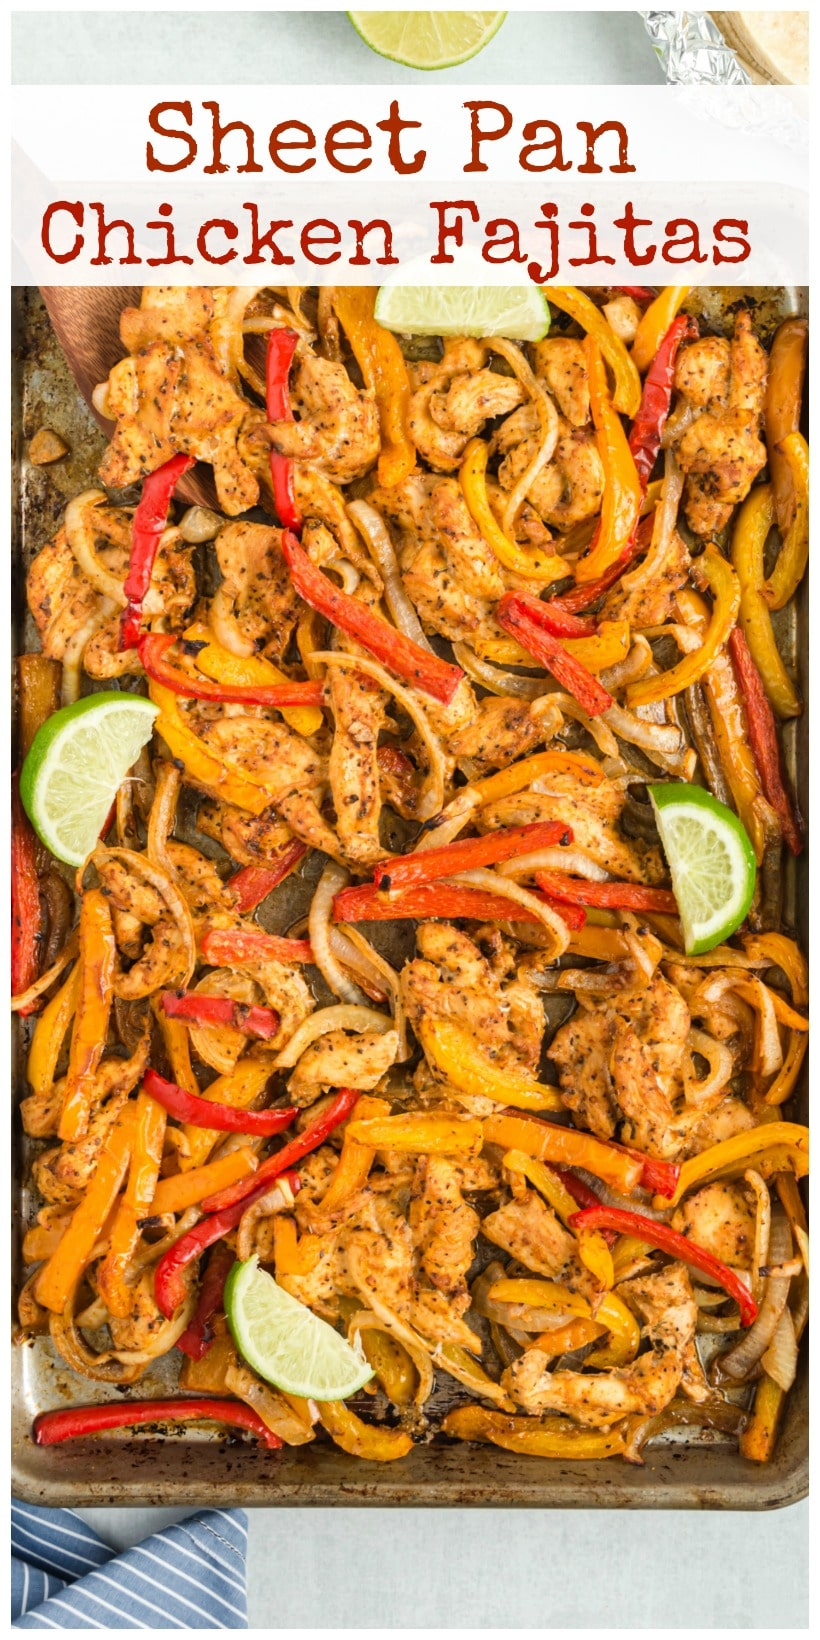 Sheet Pan Fajitas were invented with weeknight meals in mind. Perfectly seasoned, tender chicken and crunchy veggies make this tasty meal one you'll revisit often. via @cmpollak1